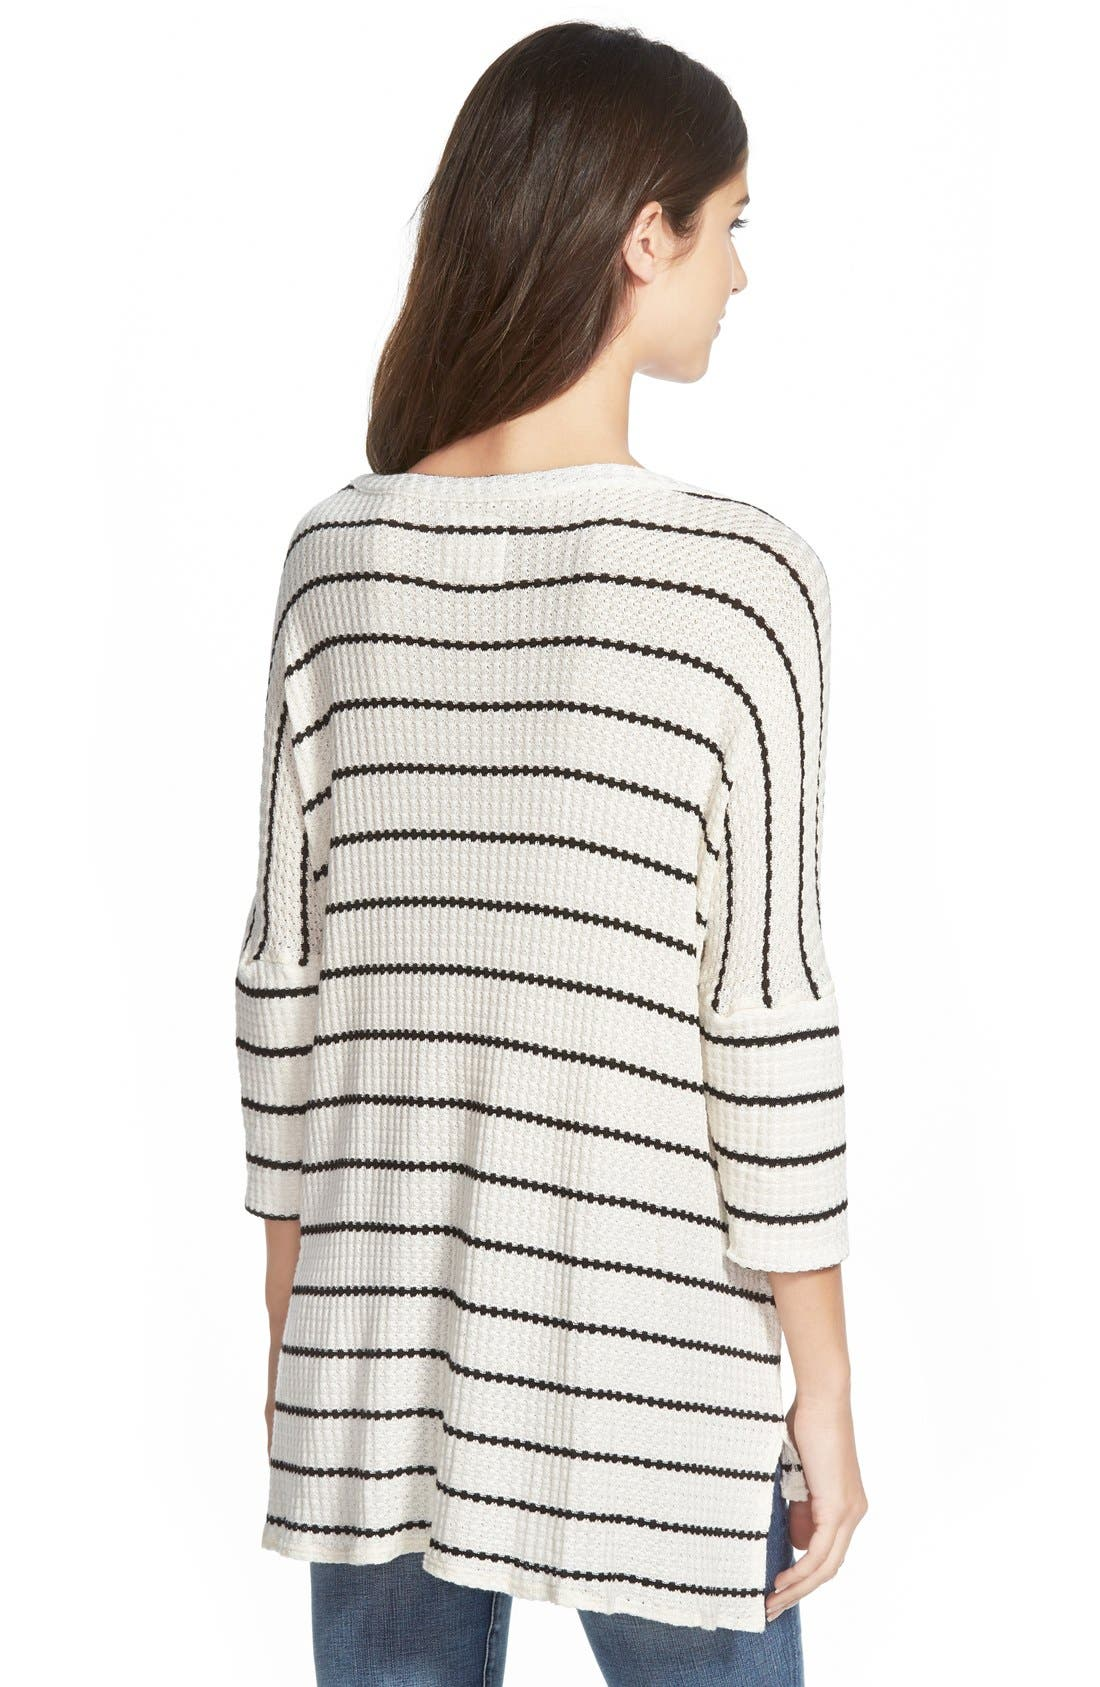 CHASER, Stripe Thermal Sweater, Alternate thumbnail 2, color, 001